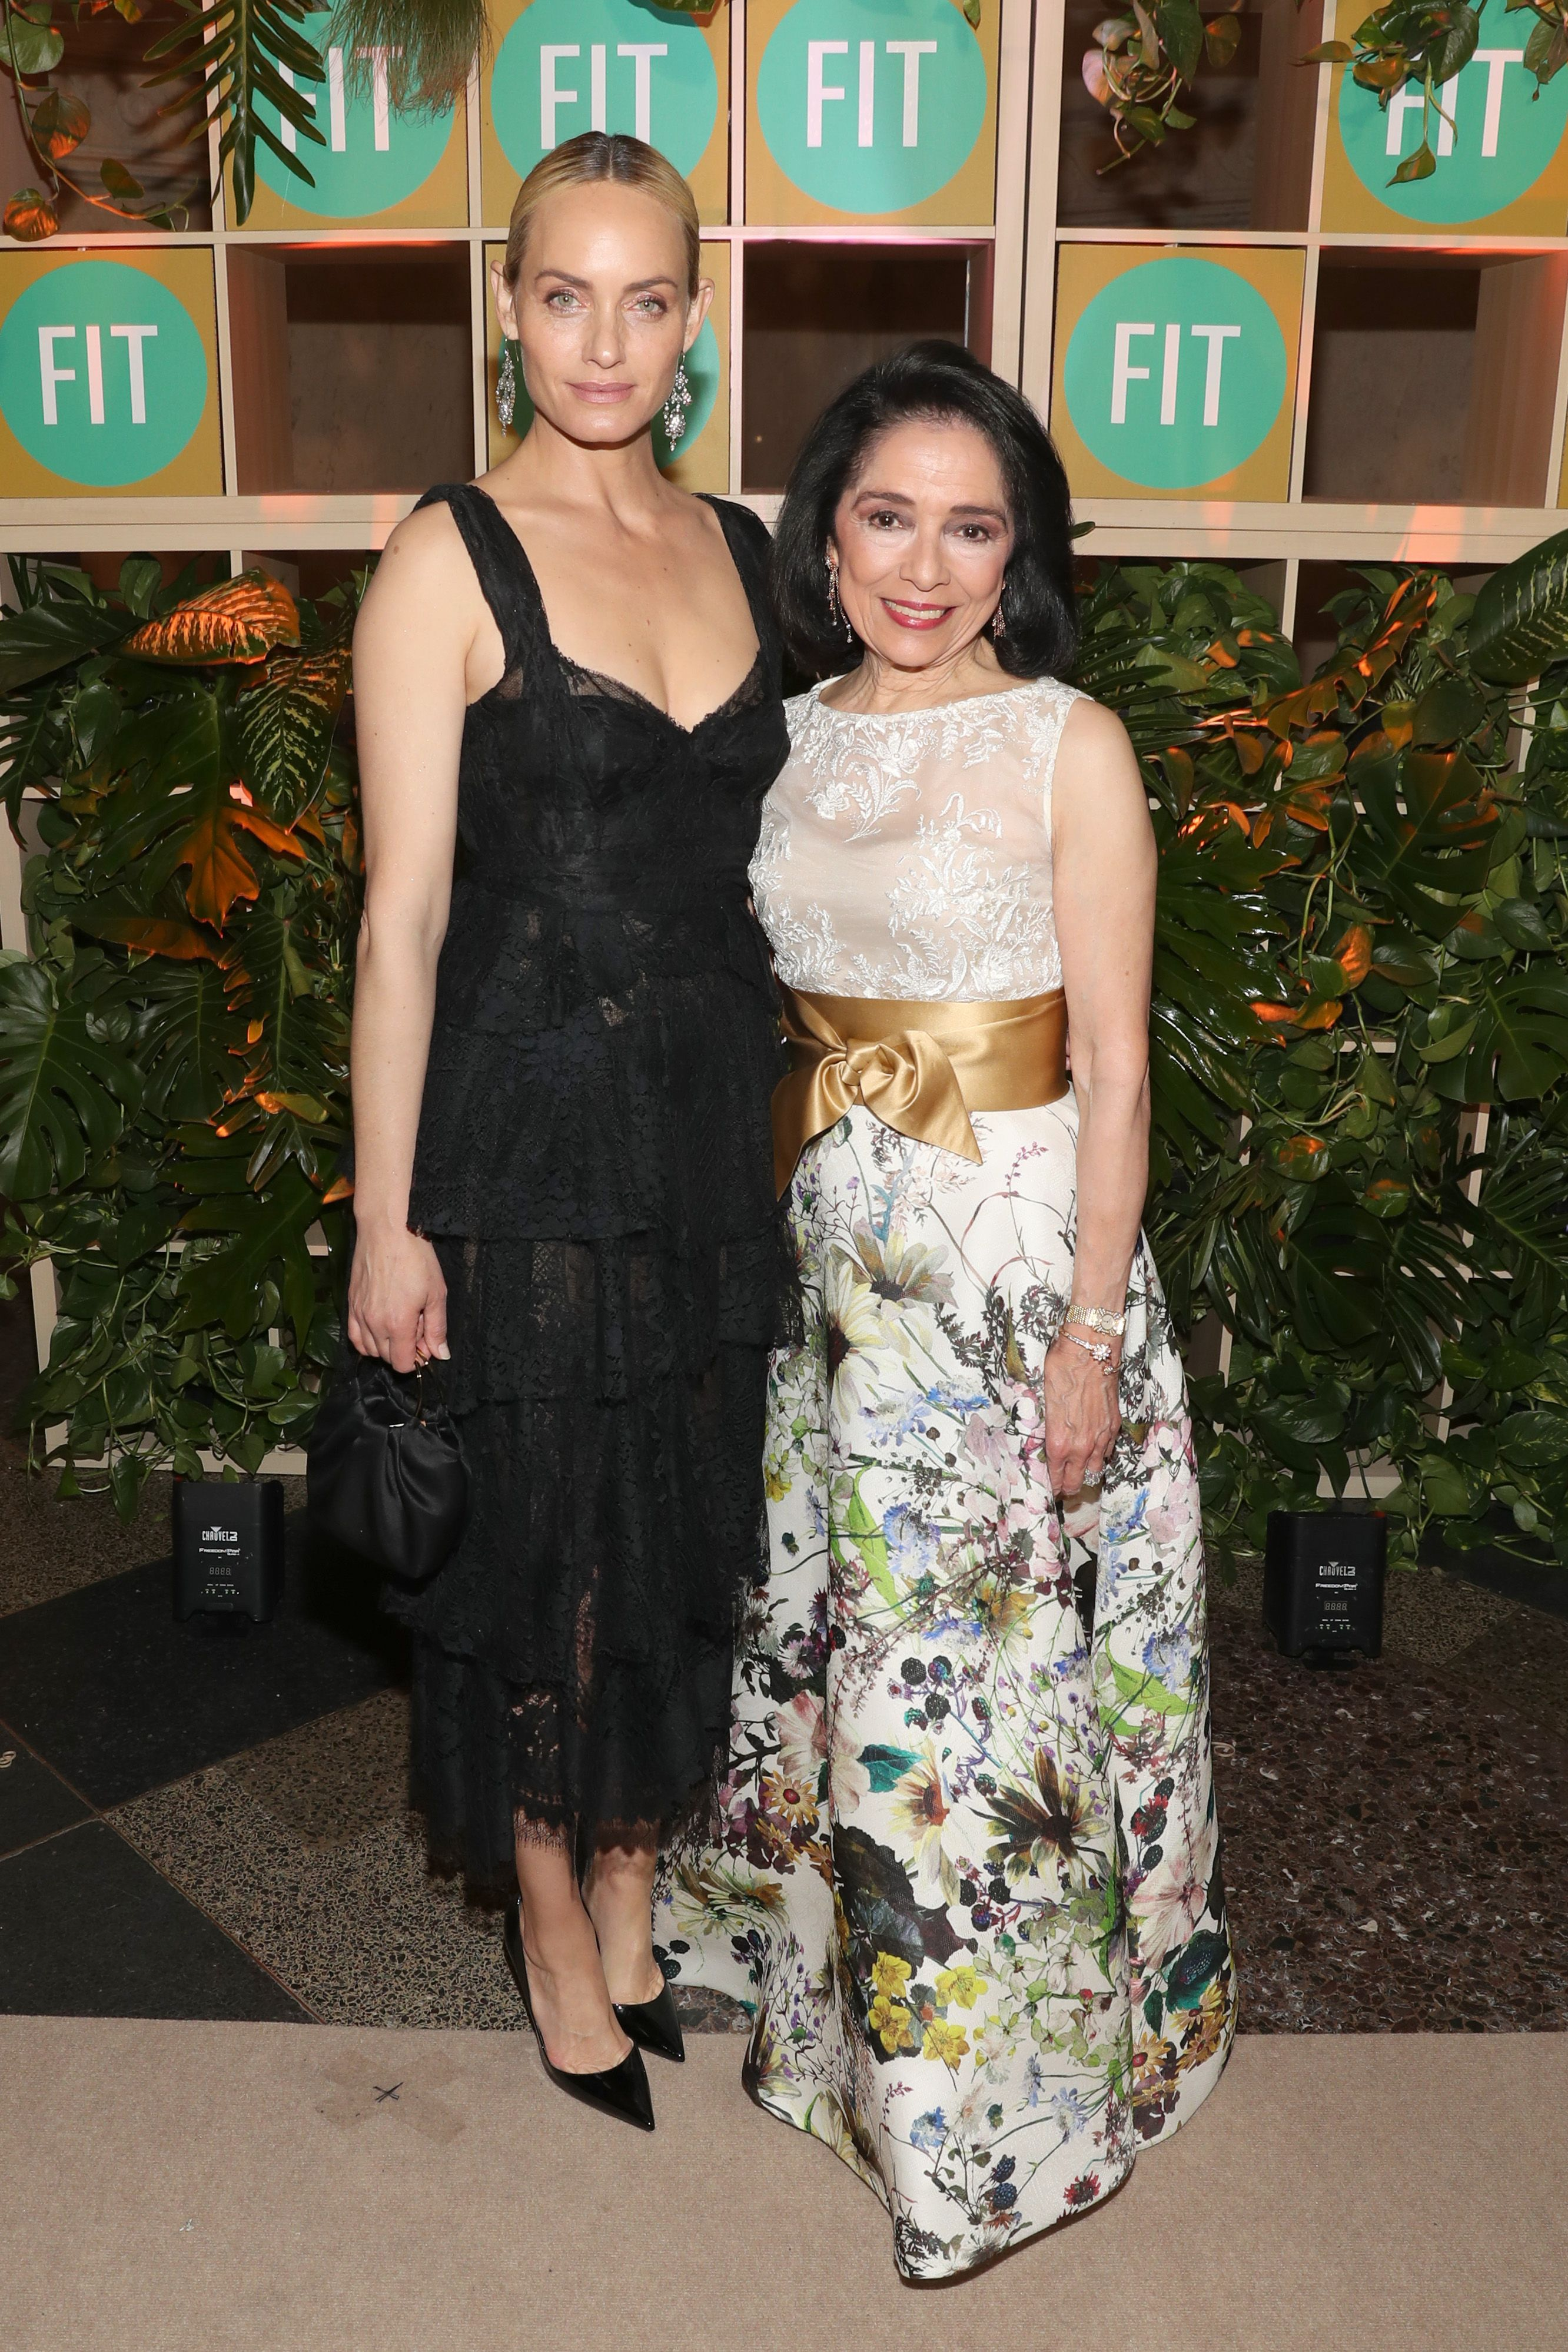 Amber Valletta and Dr. Joyce F. Brown Amber Valletta and Dr. Joyce F. Brown attends the Fashion Institute of Technology (FIT) and FIT Foundation's 2019 Annual Awards Gala at the American Museum of Natural History on April 3 in New York.